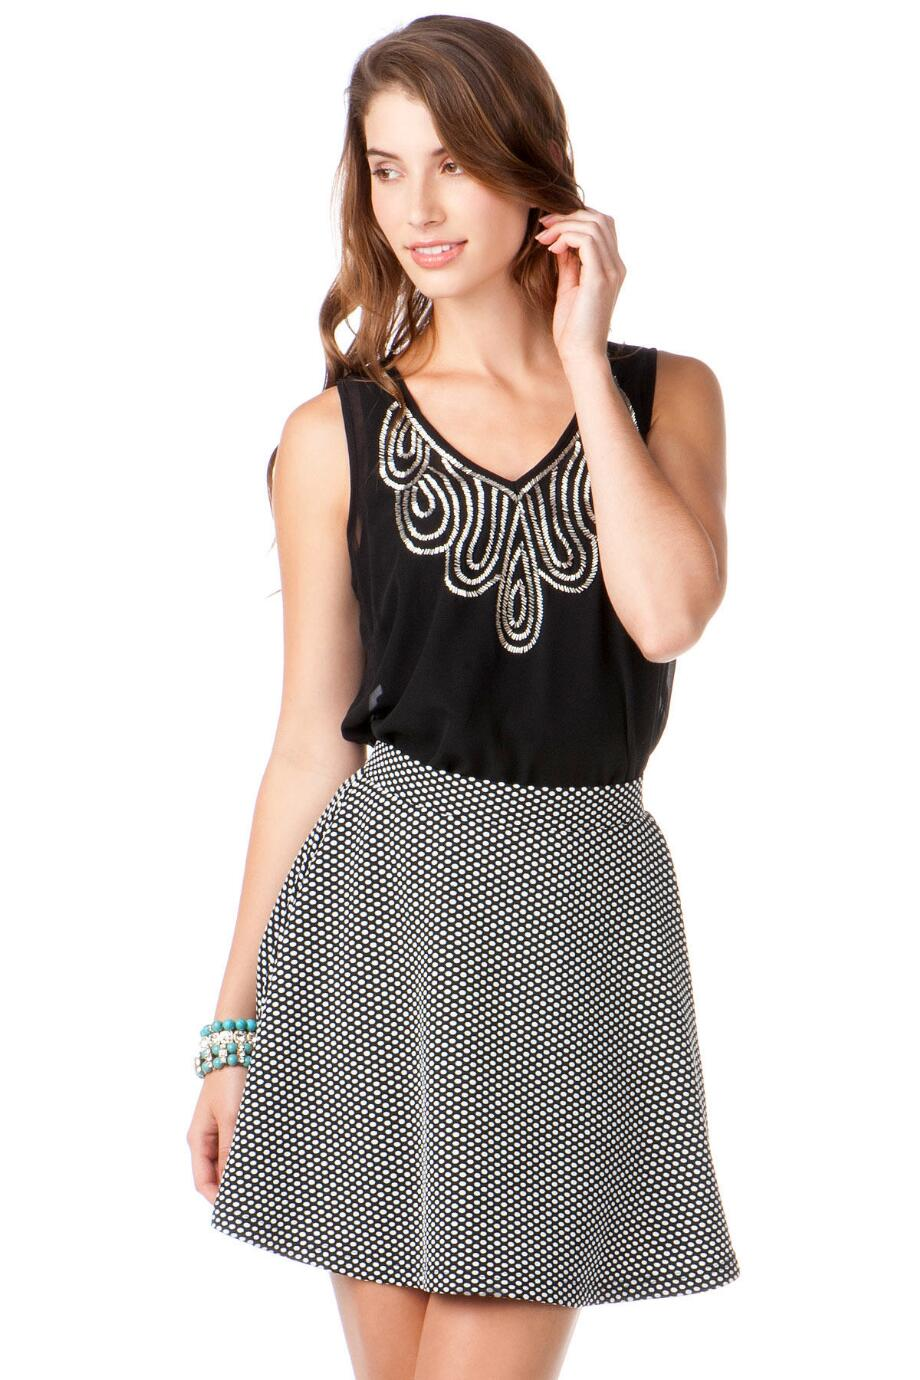 Millbrook Polka Dot Skirt